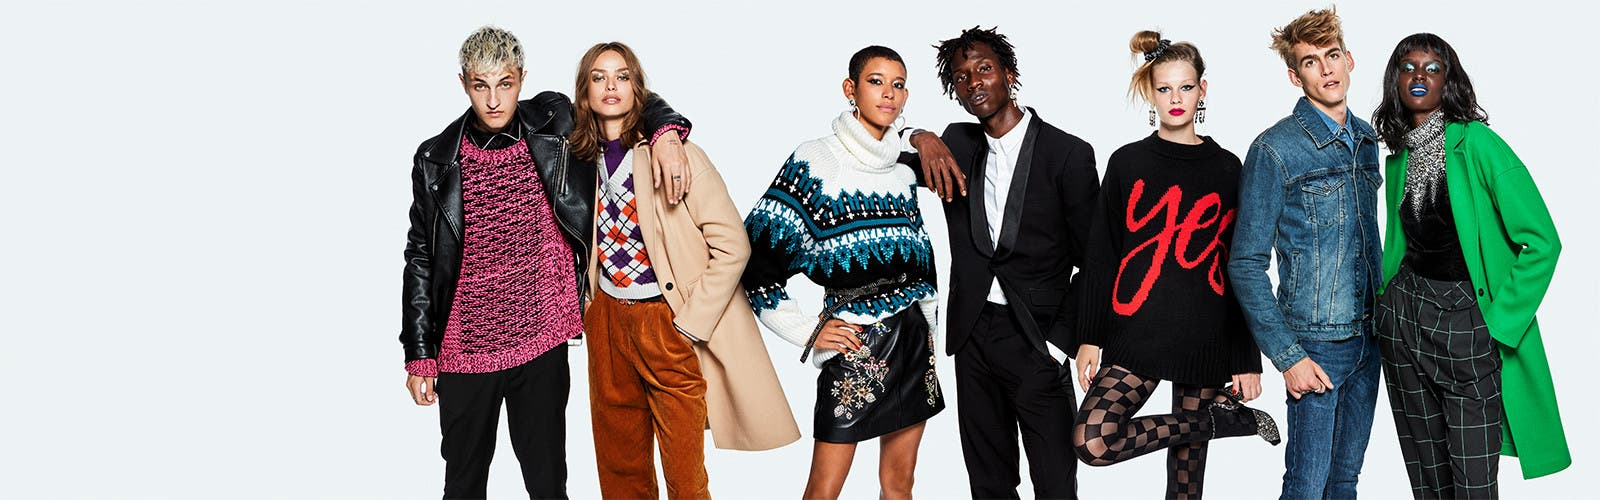 Topshop it: discover the new campaign from Topshop.